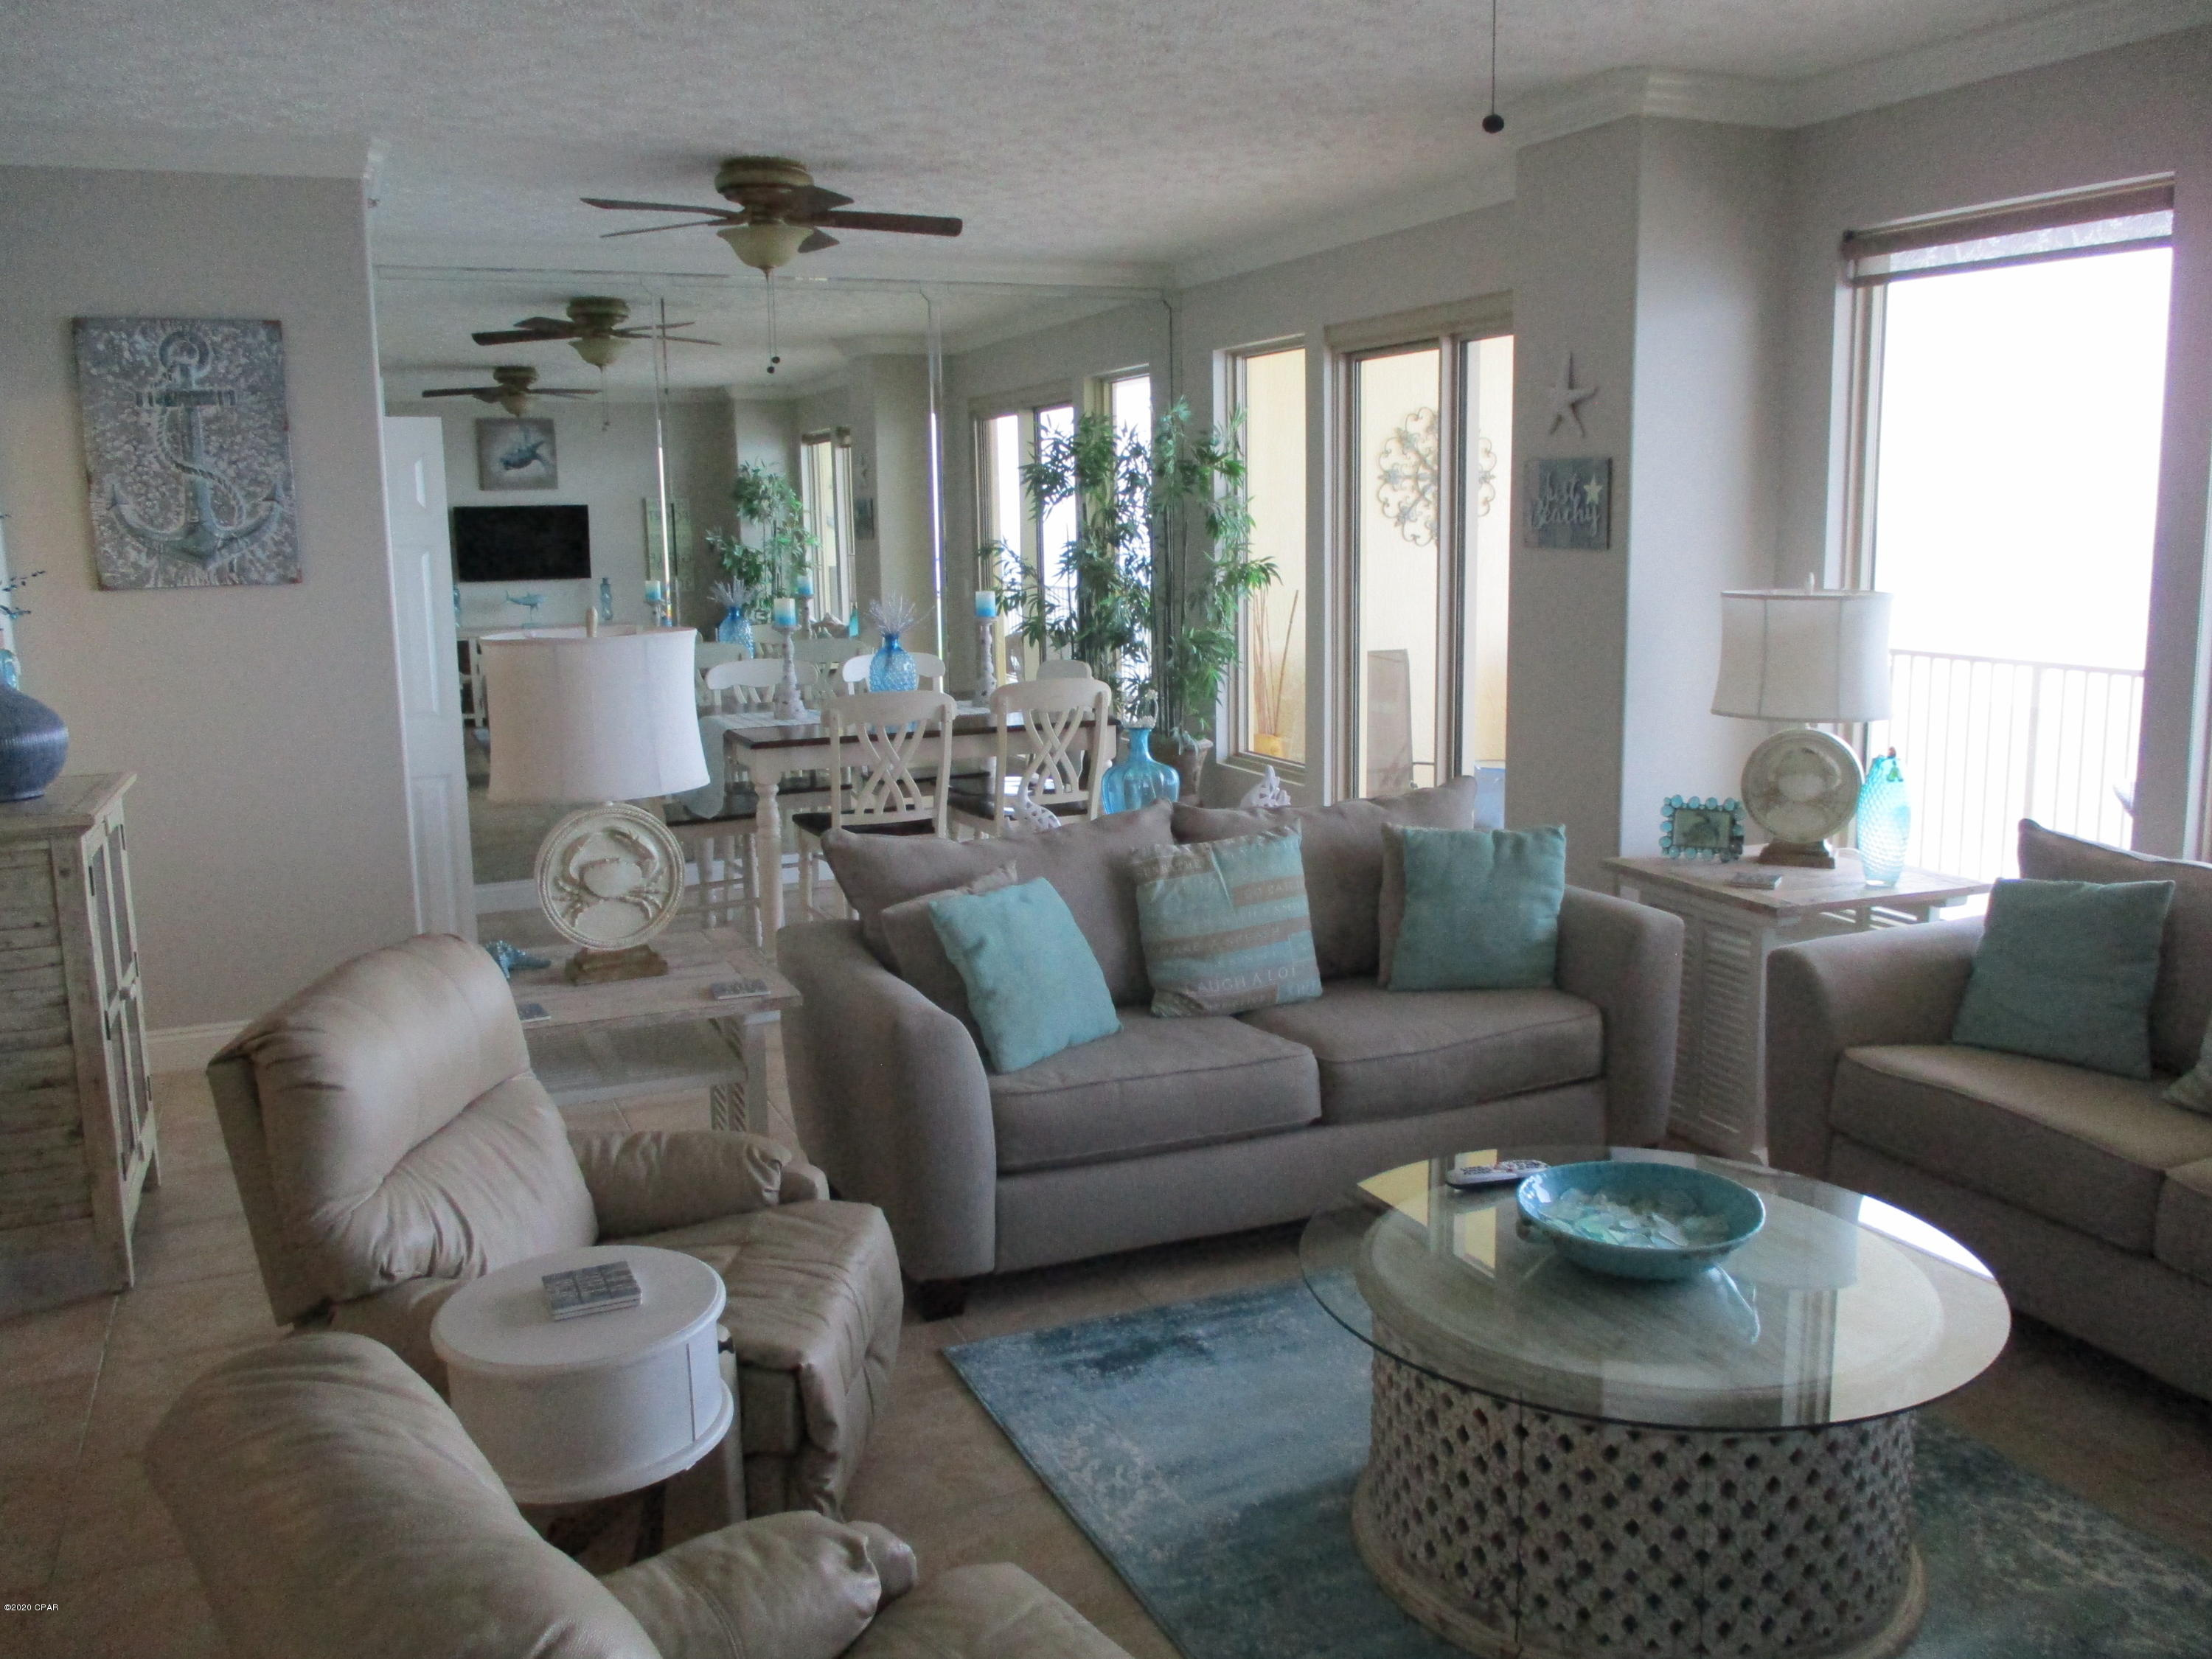 MLS Property 701805 for sale in Panama City Beach